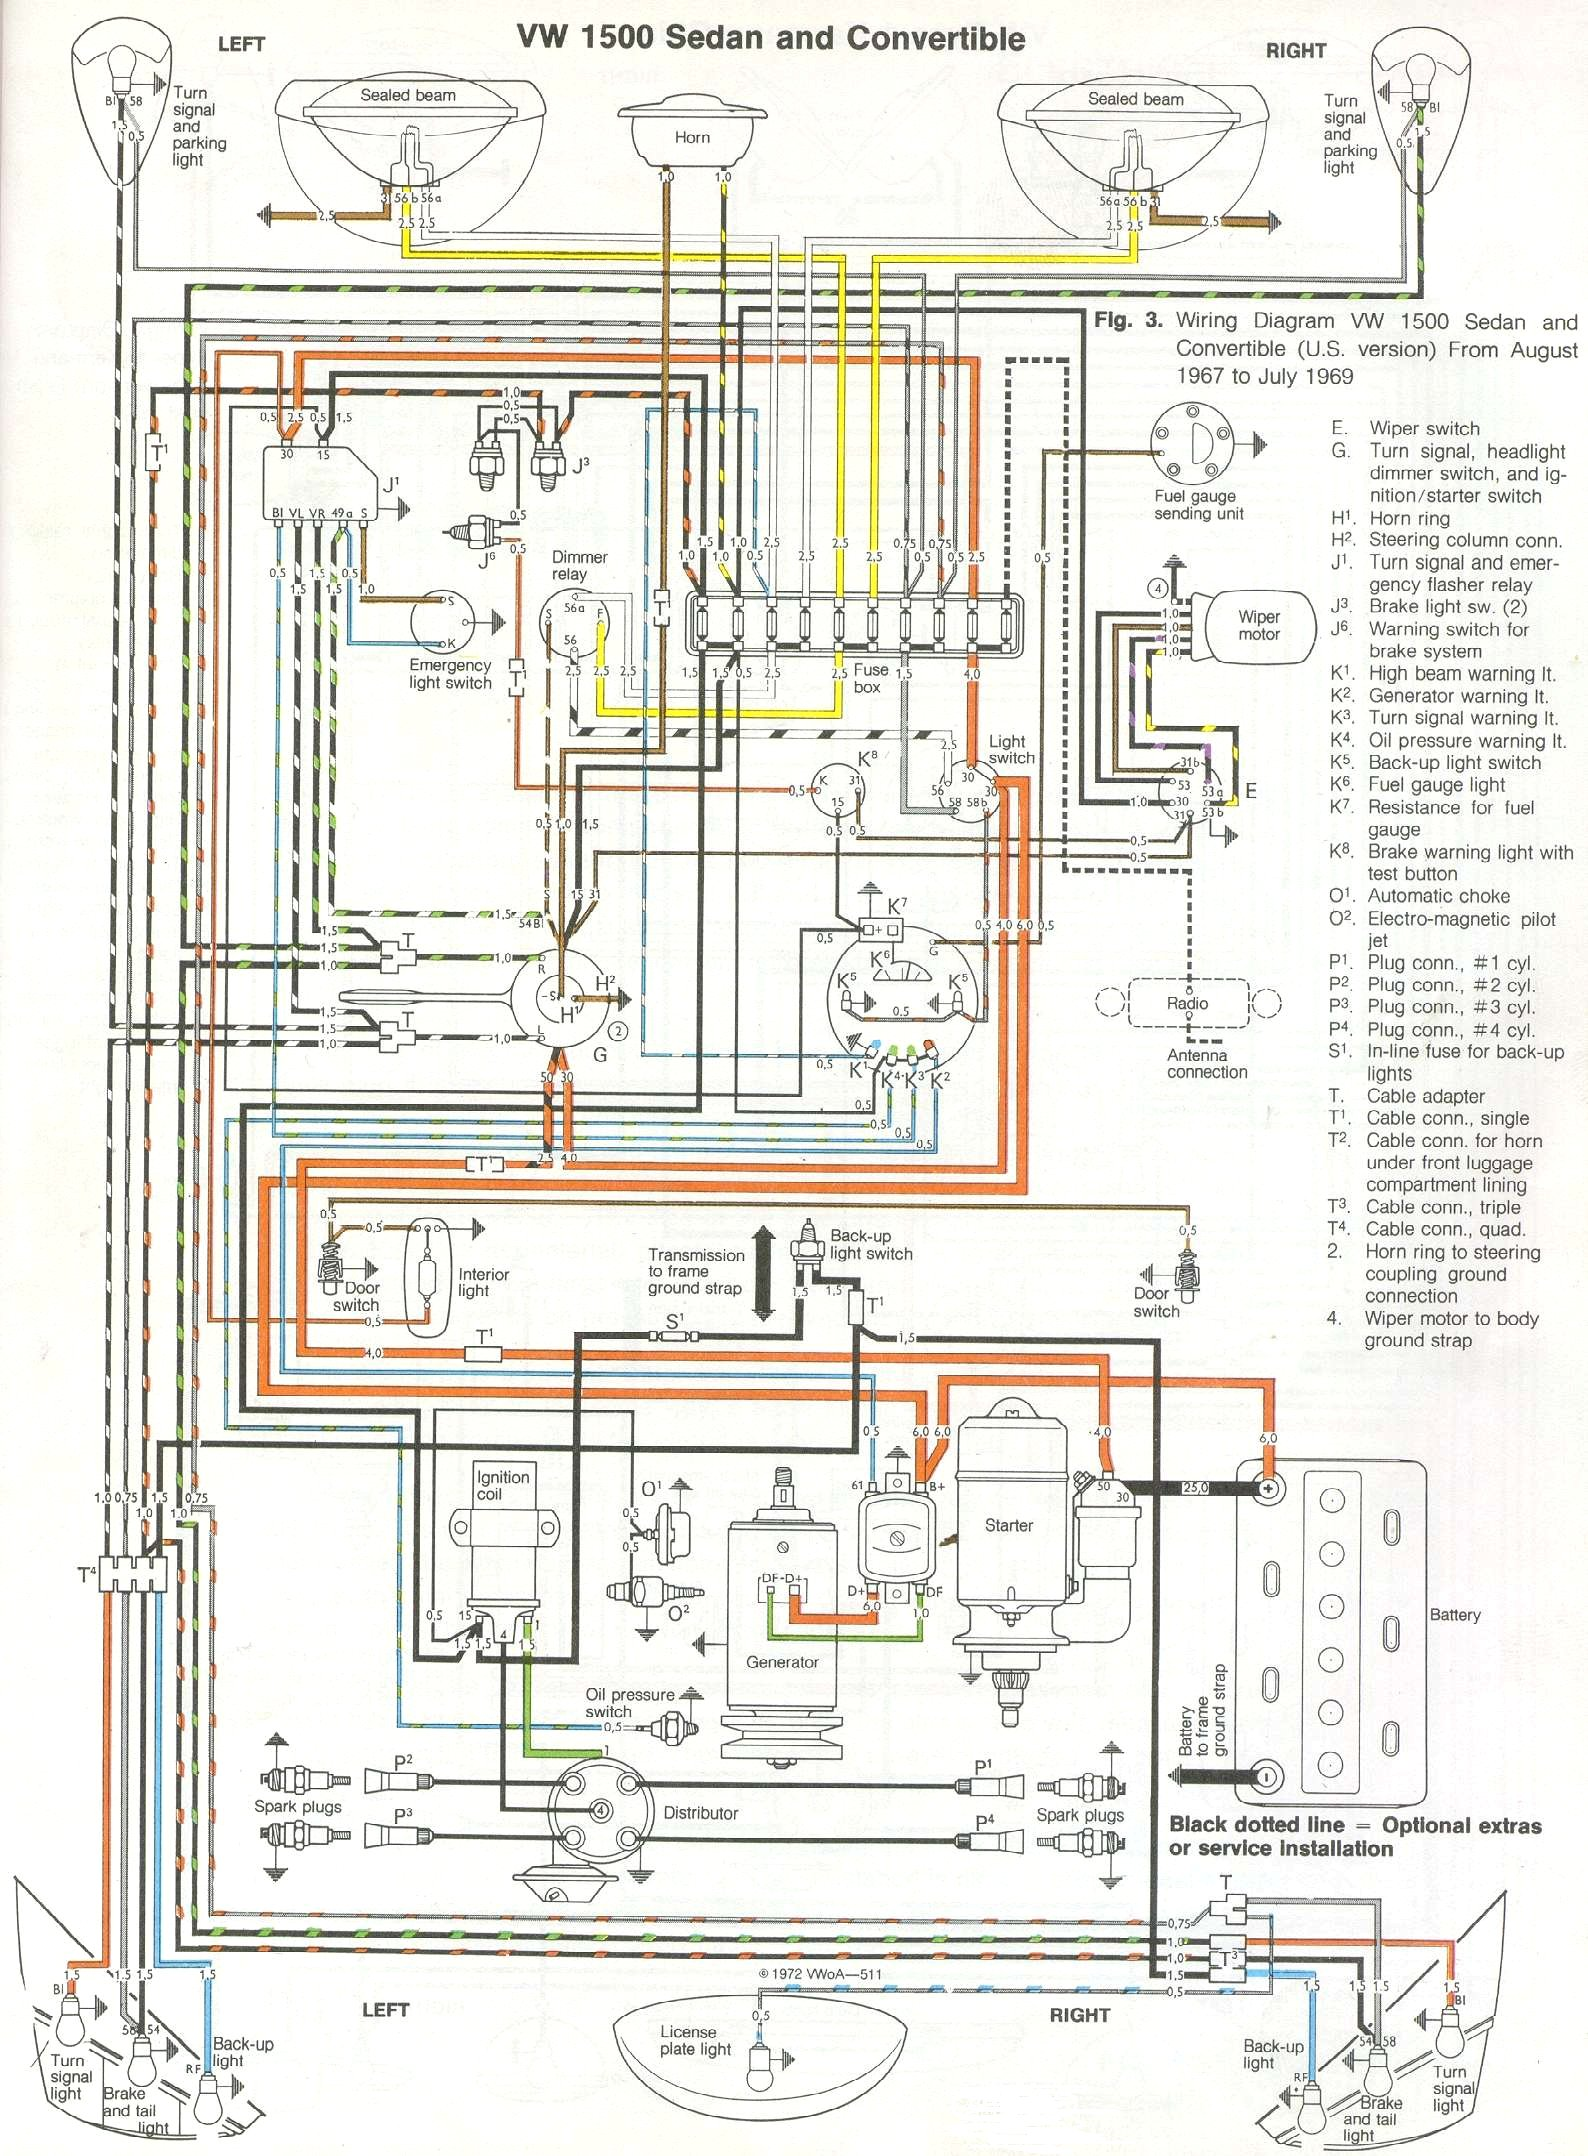 bug_6869 71 vw beetle wiring diagram 71 wiring diagrams instruction 1978 vw wiring diagram at n-0.co